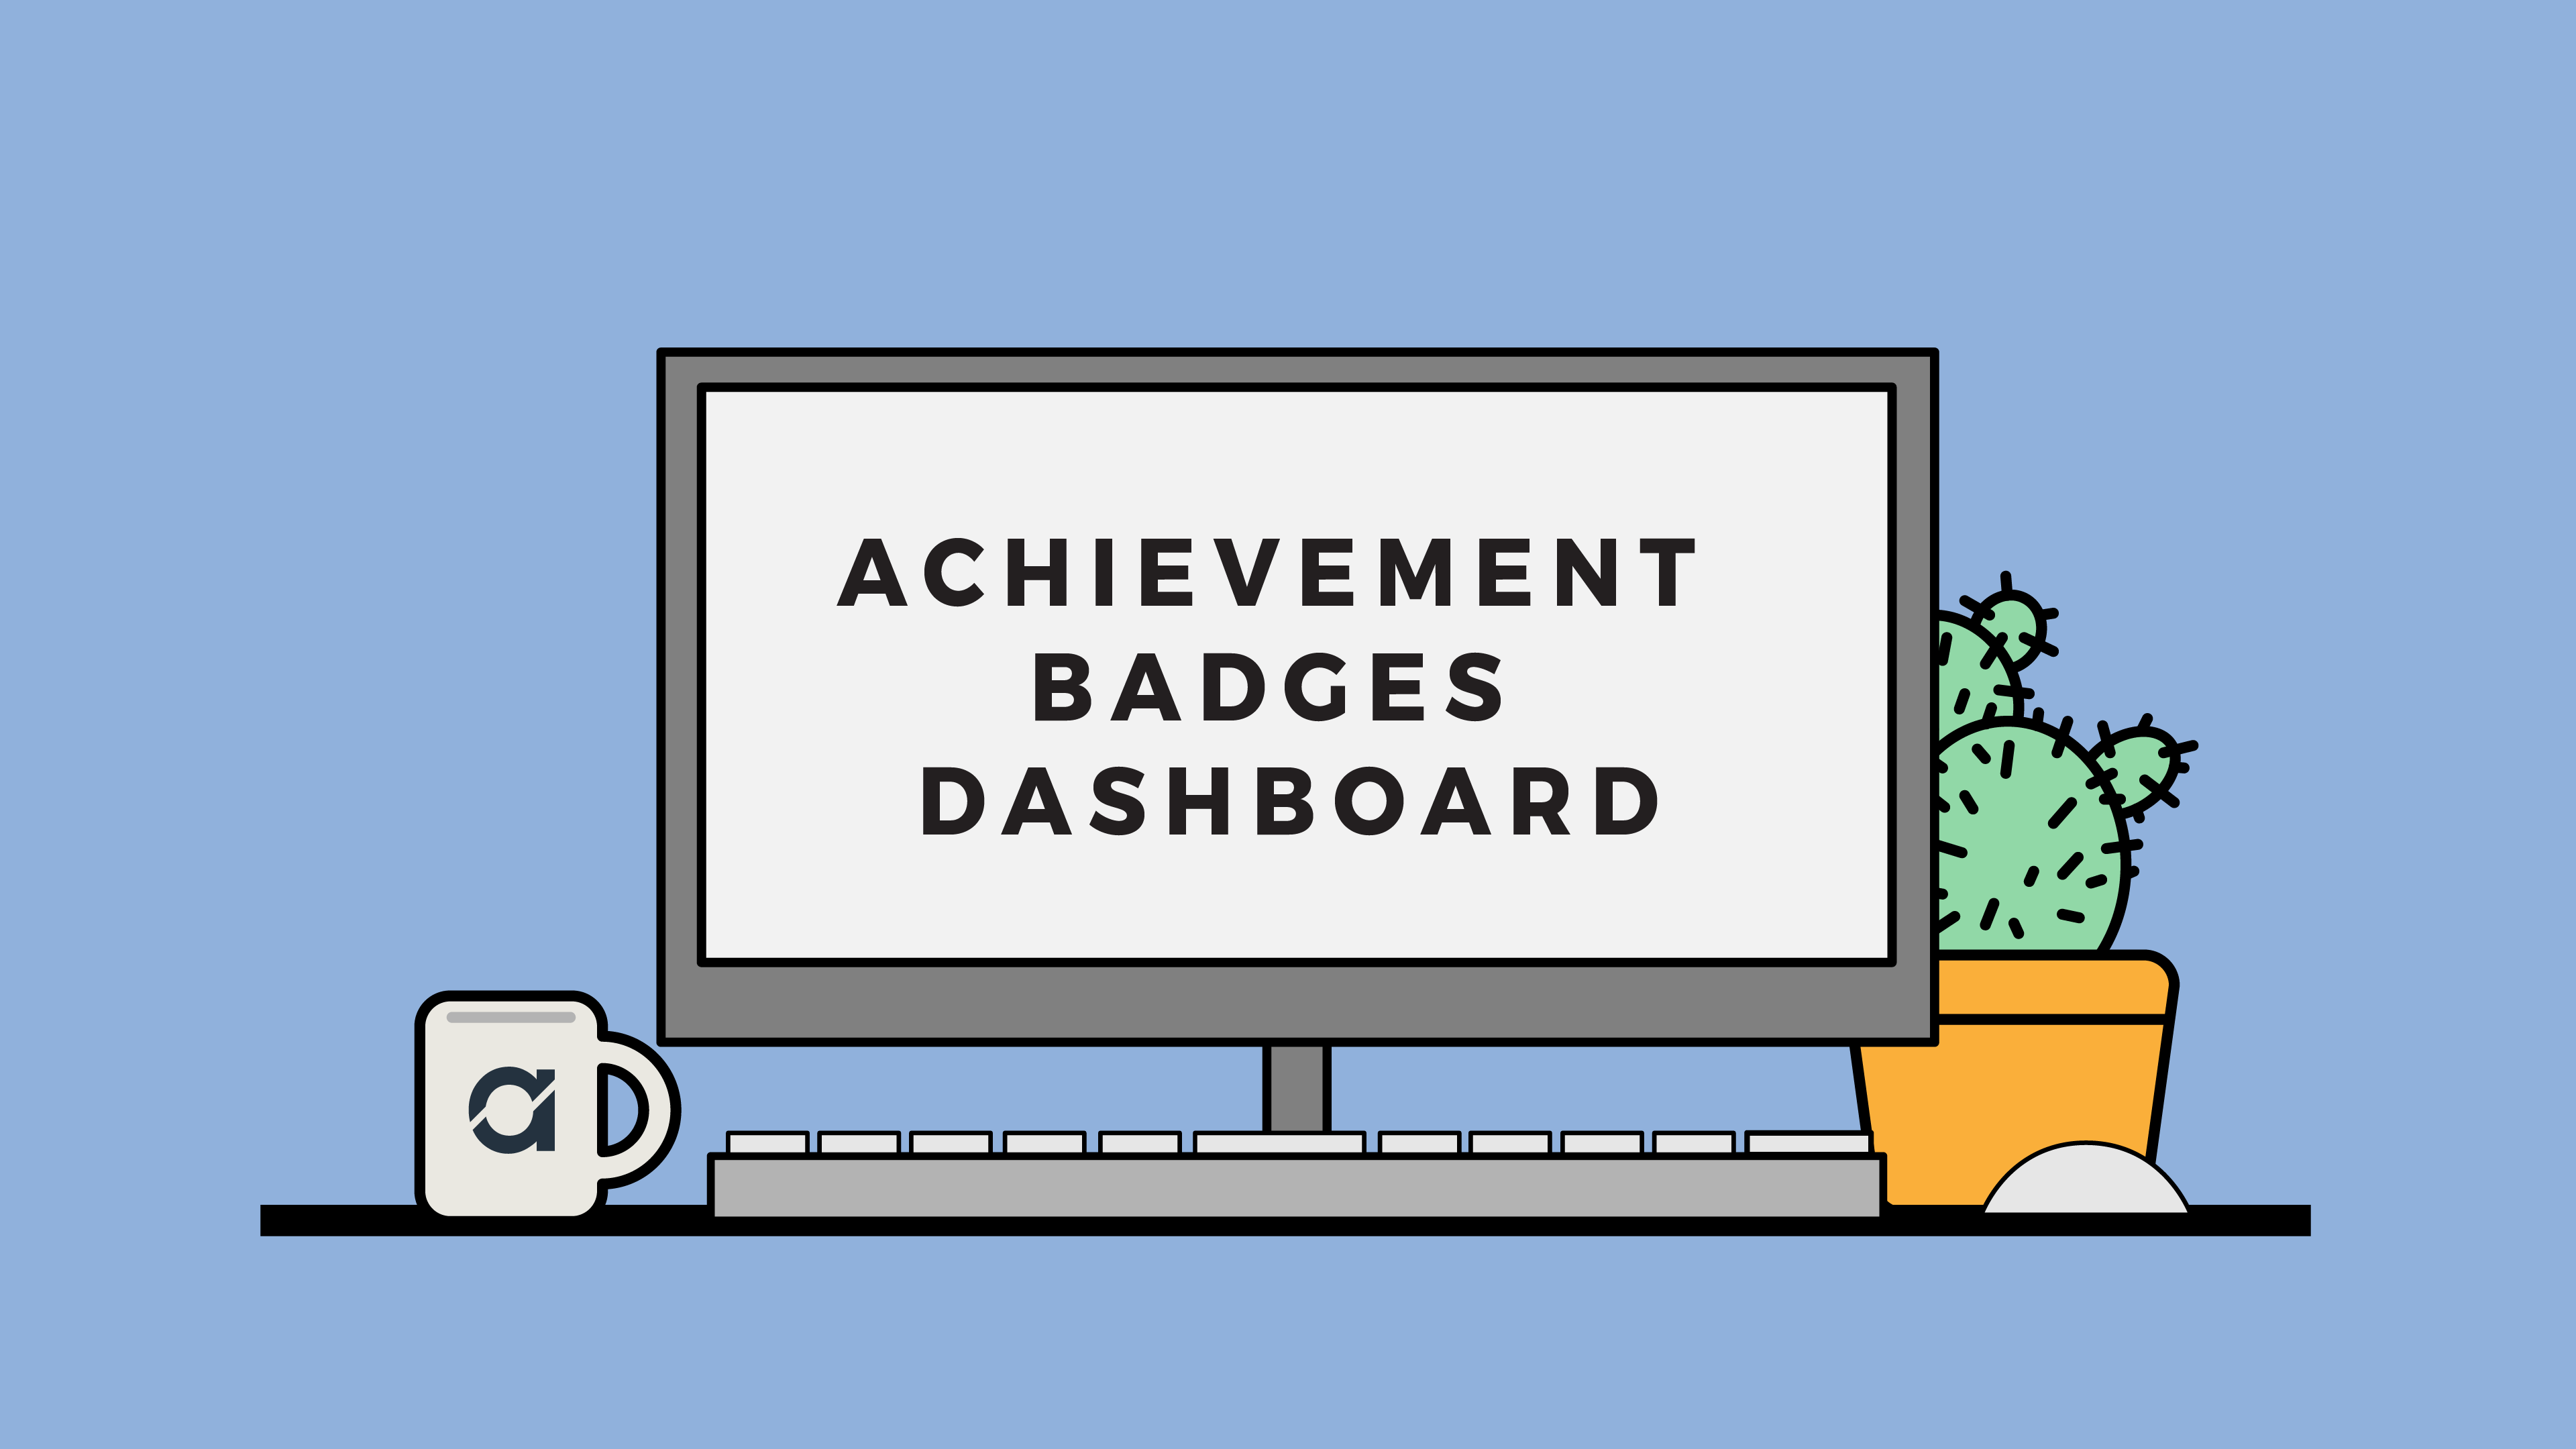 achievement badges dashboard